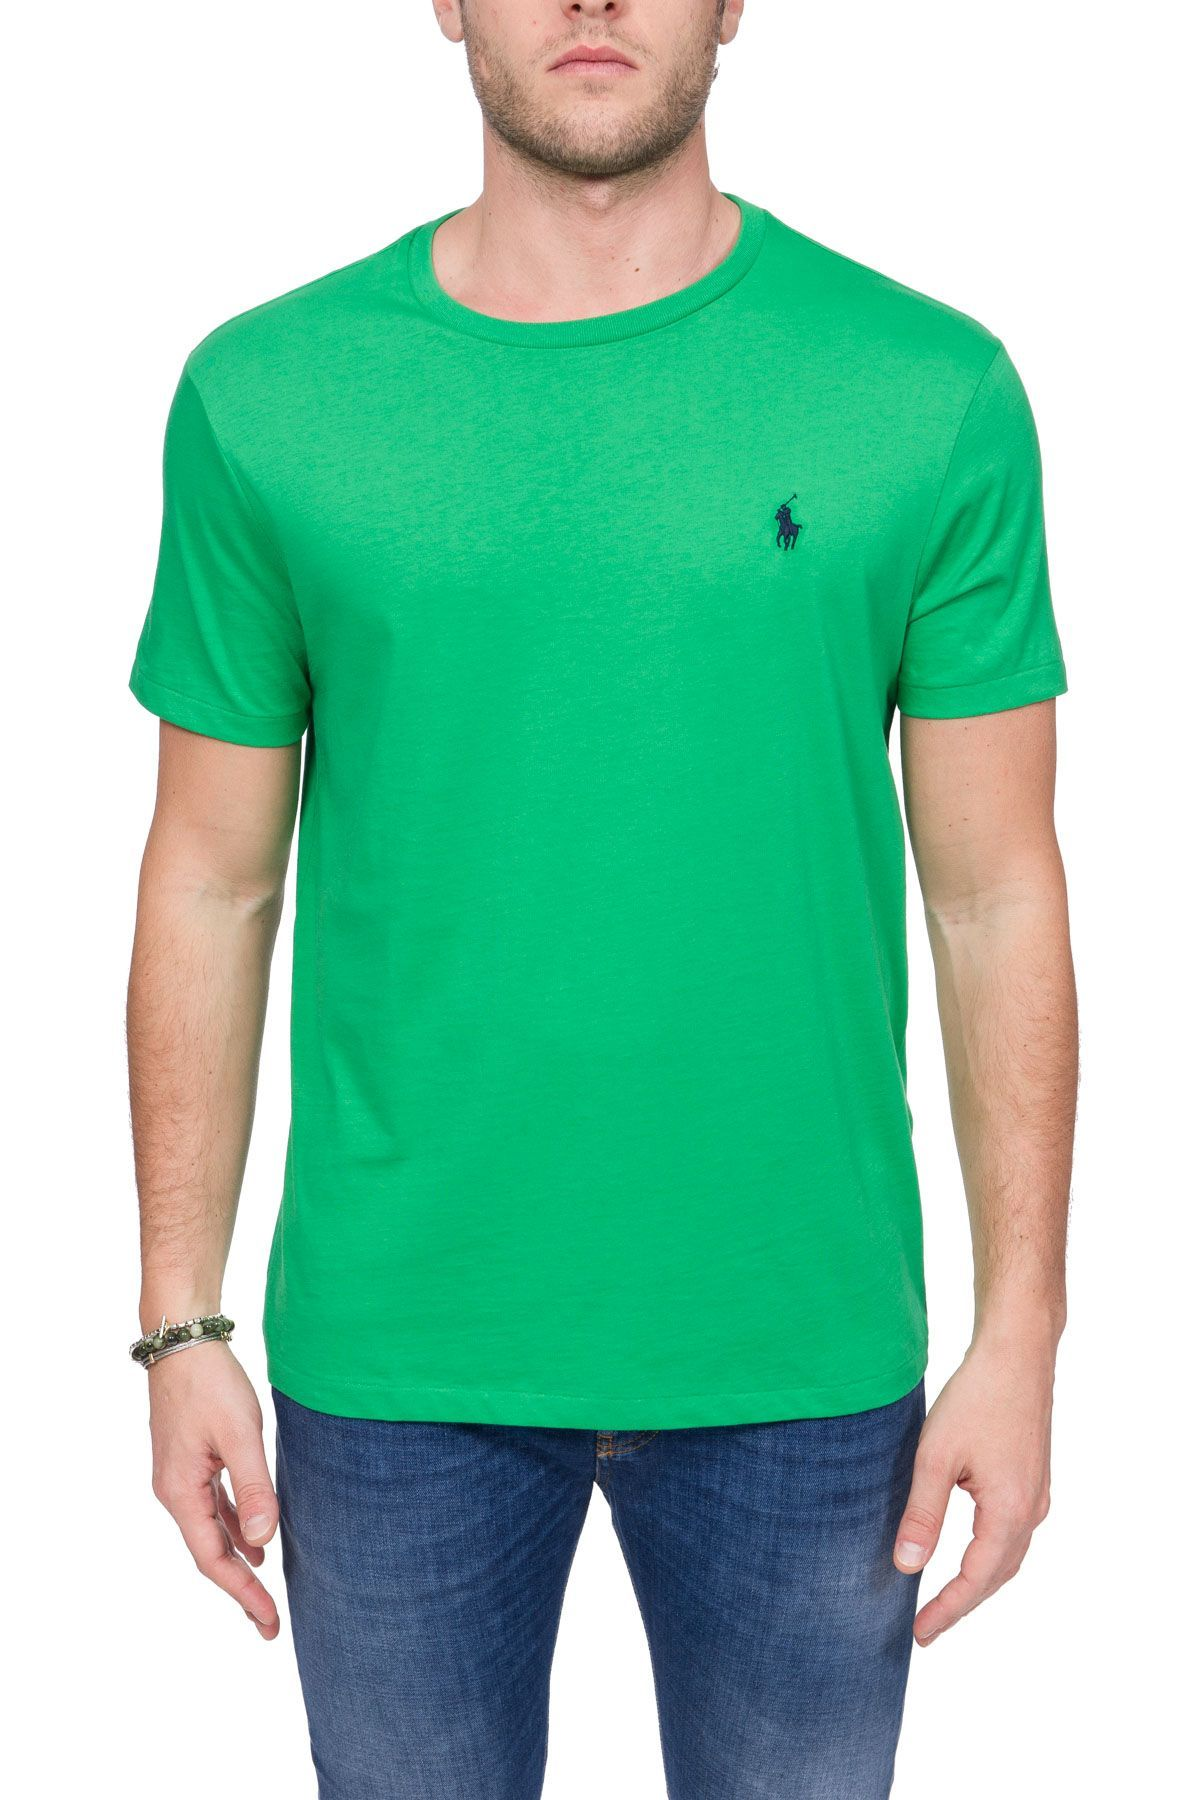 RALPH LAUREN MEN'S 710671438121 GREEN COTTON T-SHIRT